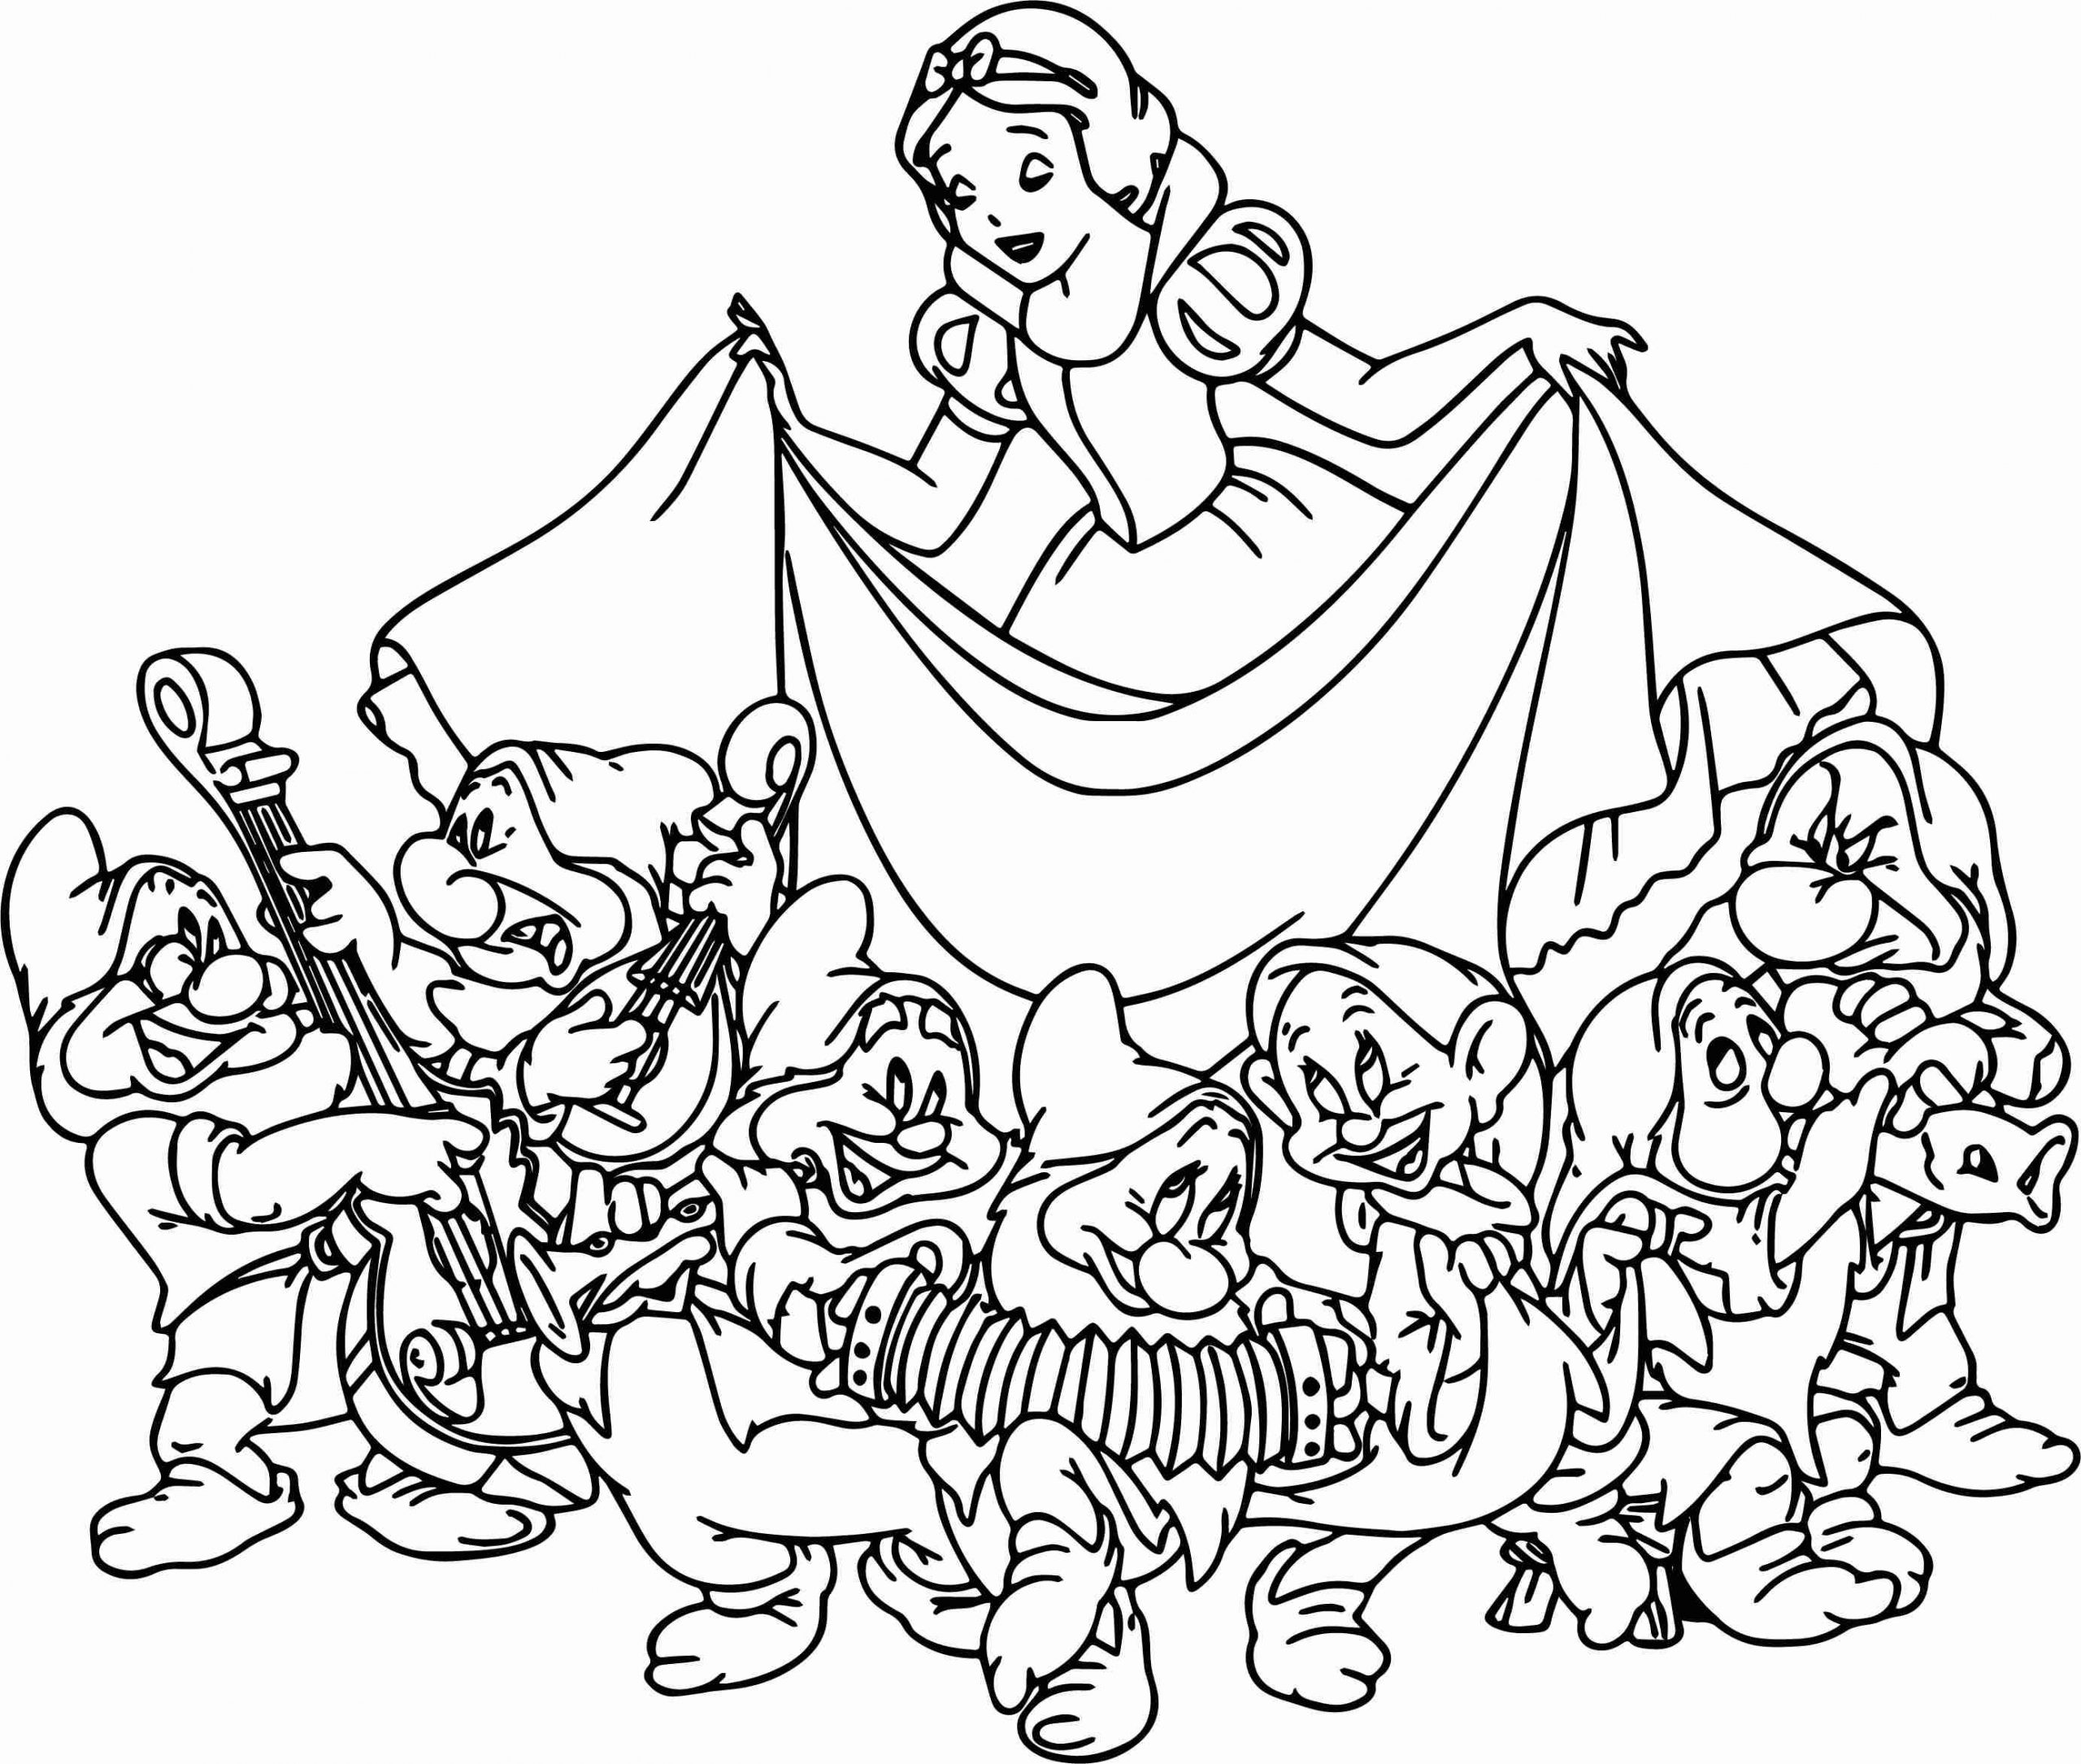 Snow white and the seven dwarfs coloring